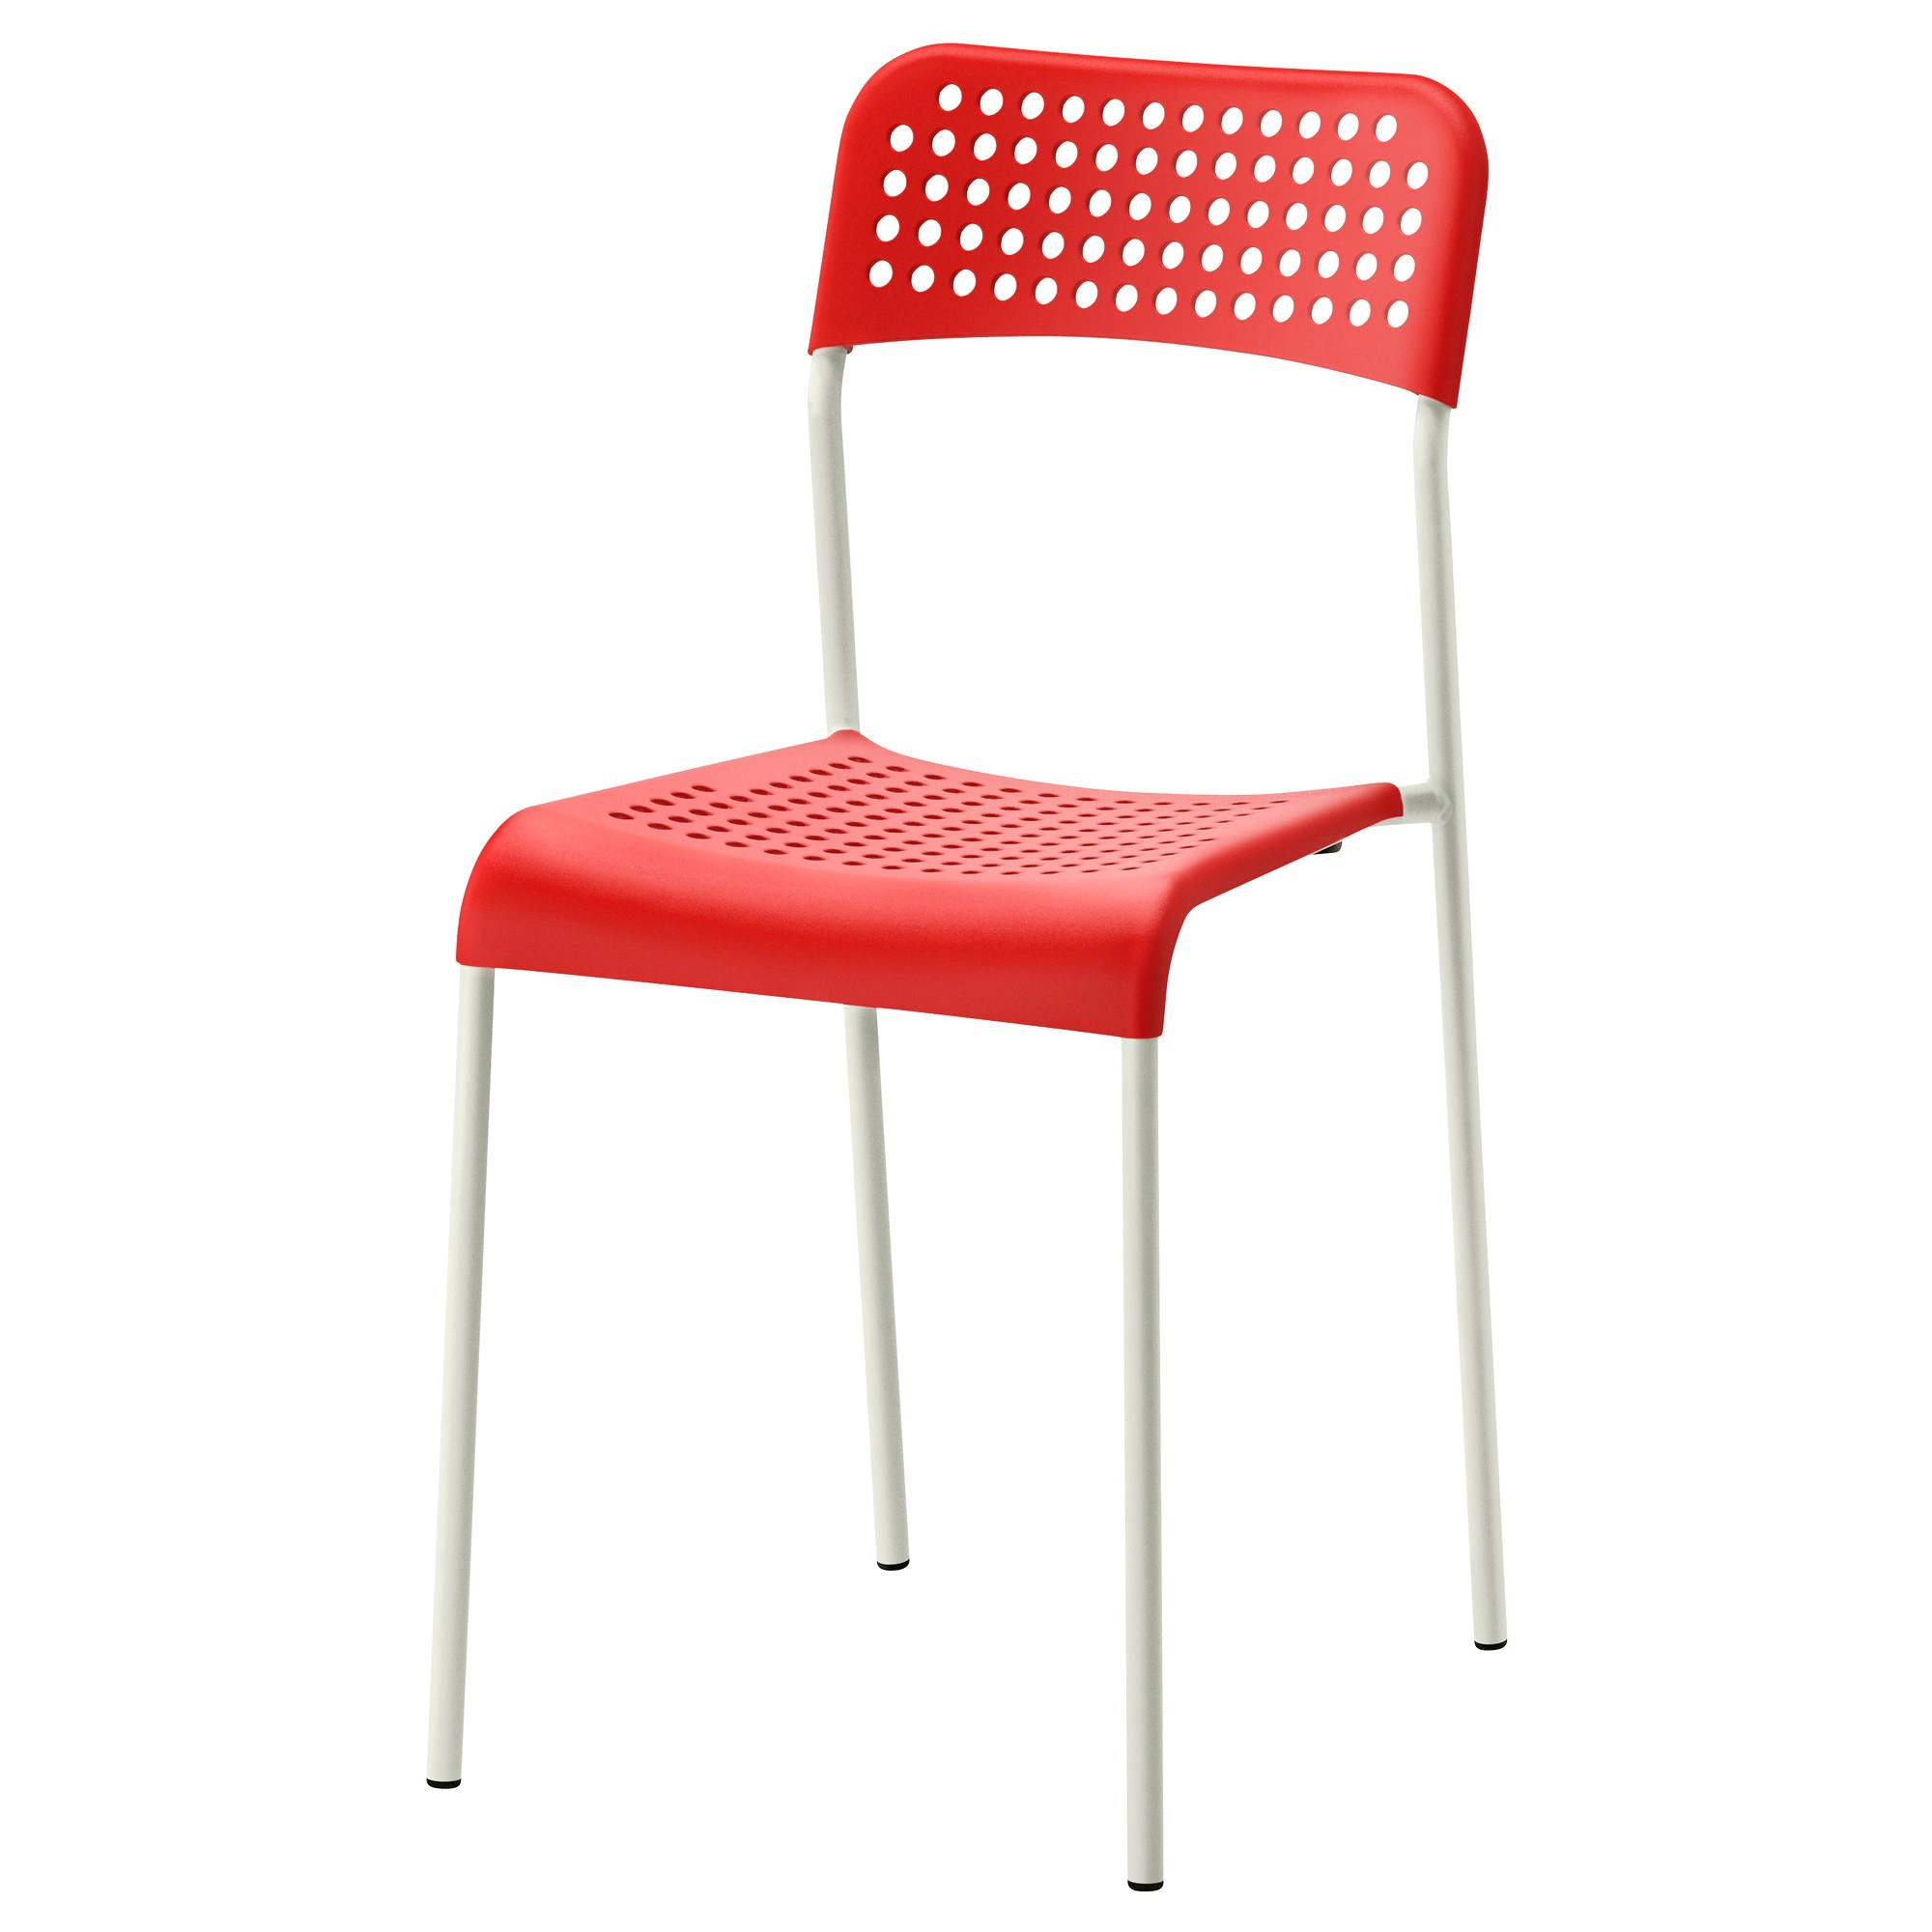 Chaises Empilables Ikea Chaise Adde Rouge Blanc